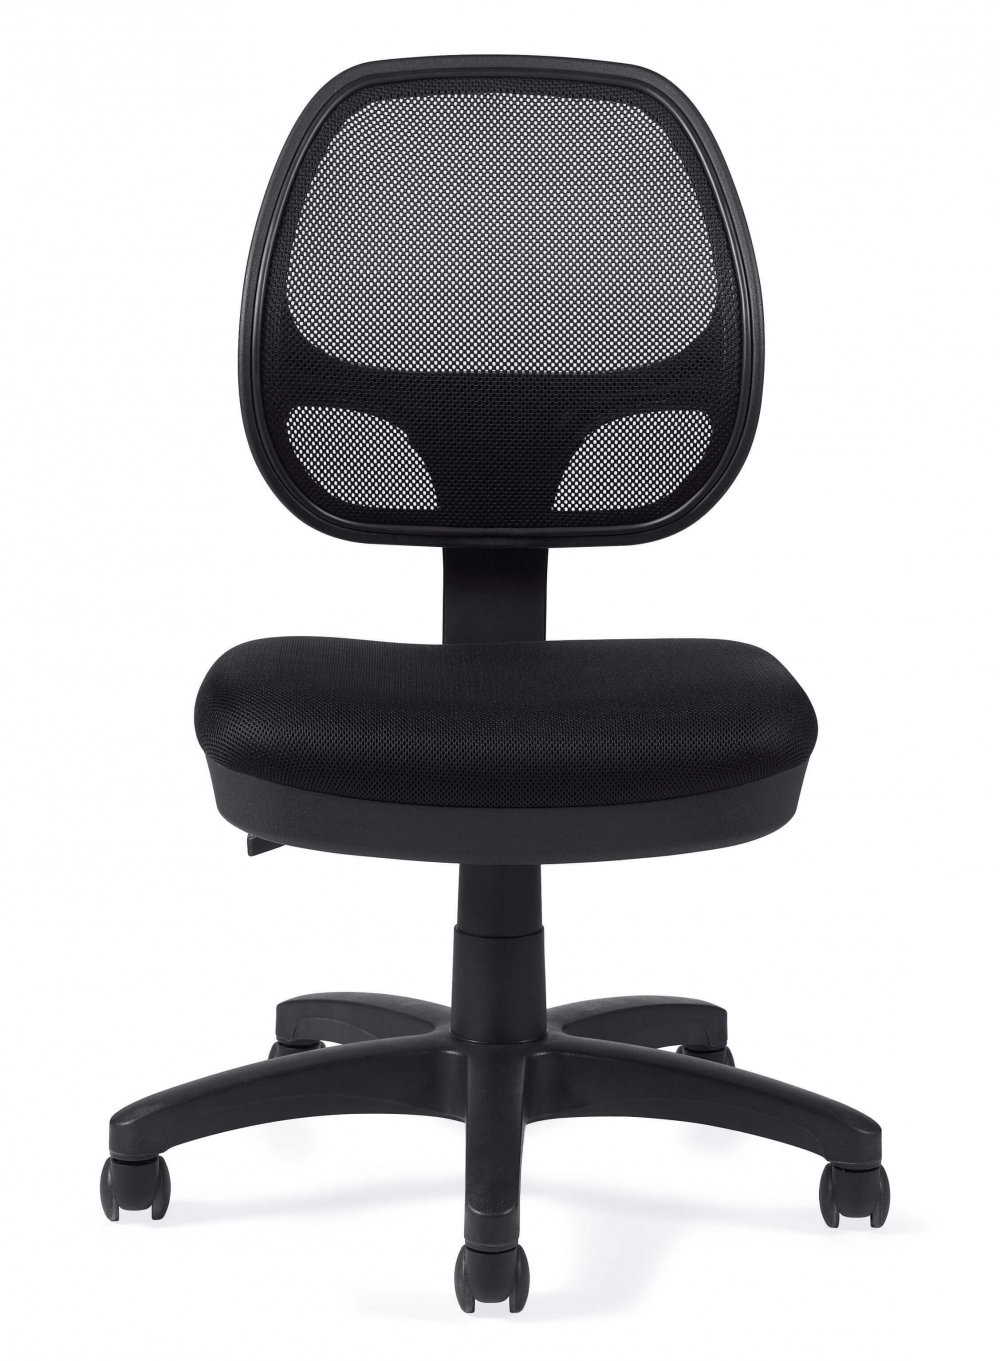 Affordable office chairs front view